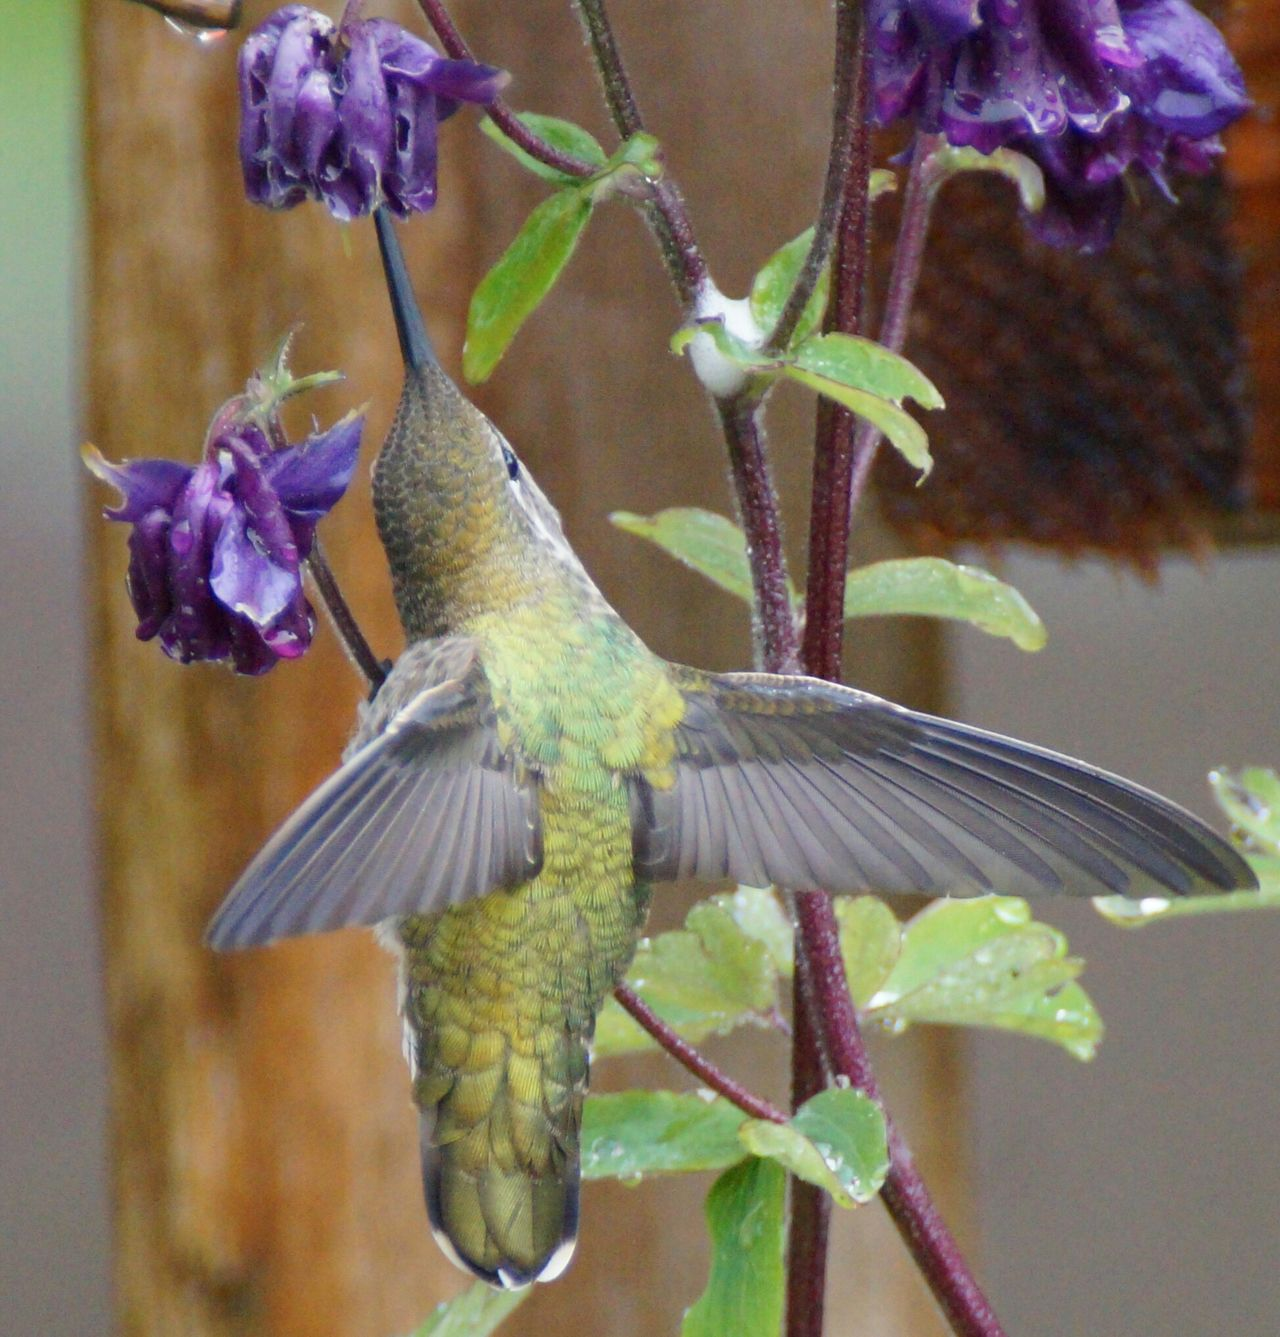 Humming Bird Purple Animal Themes Flower Nature No People Close-up One Animal Animals In The Wild Day Animal Wildlife Beauty In Nature Fragility Outdoors Bird Photography Humming Bird Flying Birds In Flight Hummingbirds Flowers Bird Beauty Hummingbird Feeding